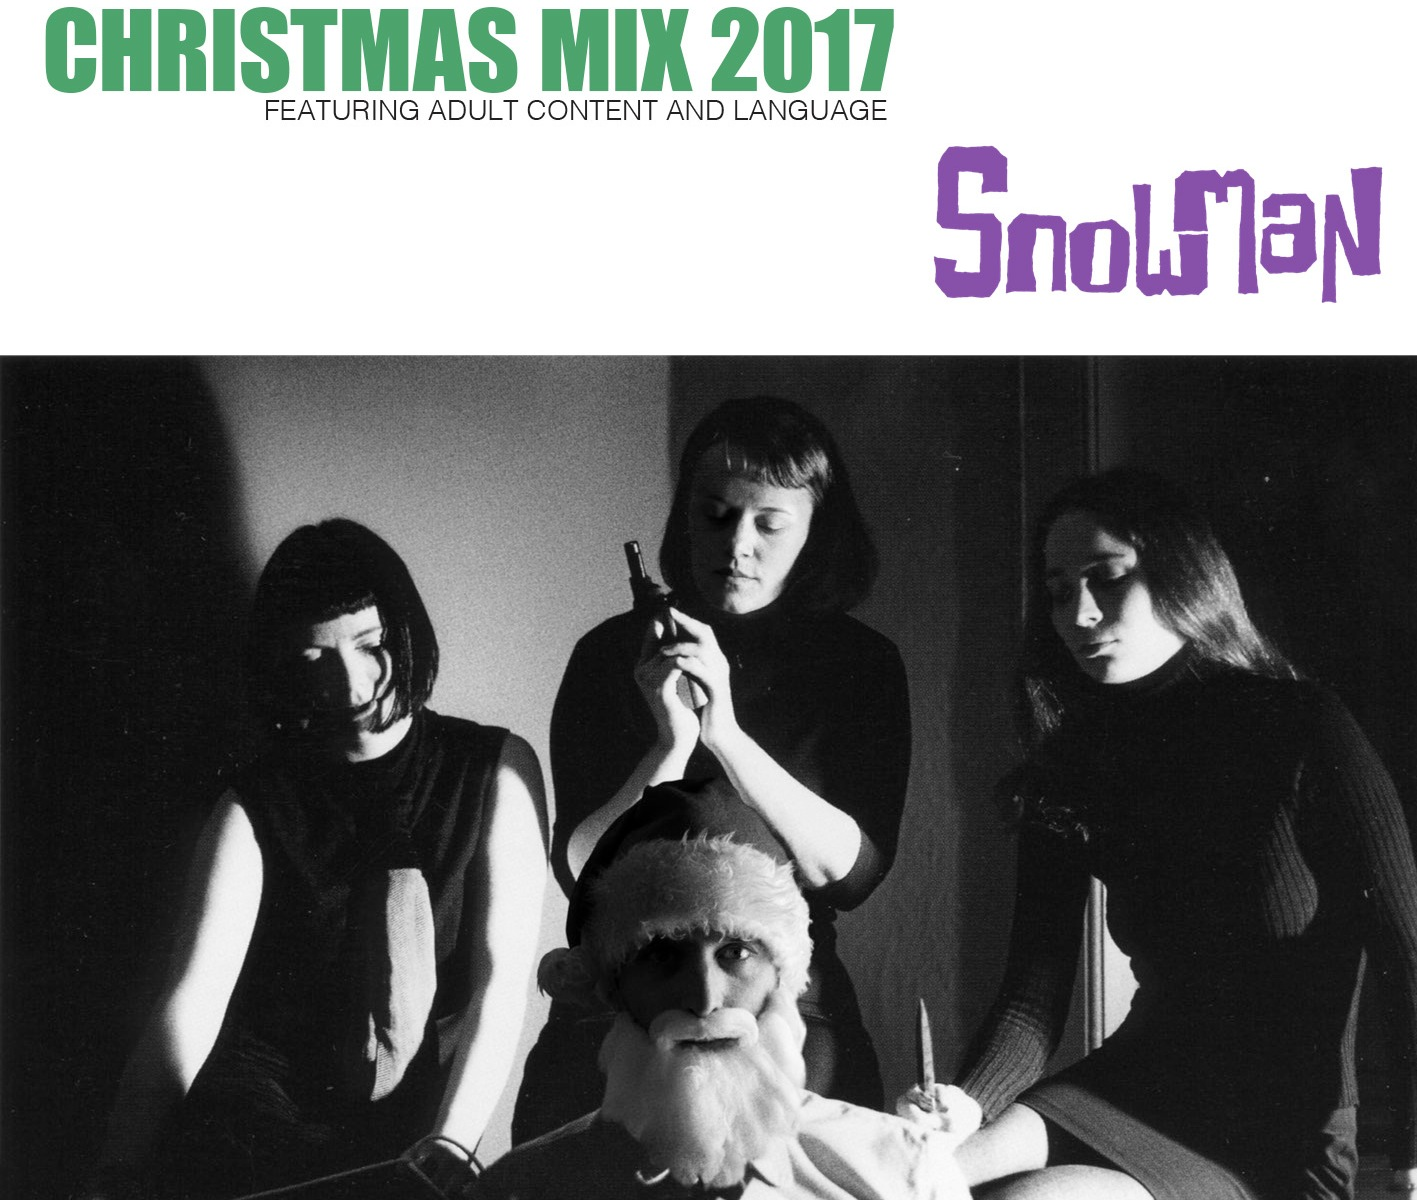 Christmas Mix 2017: Snow Man